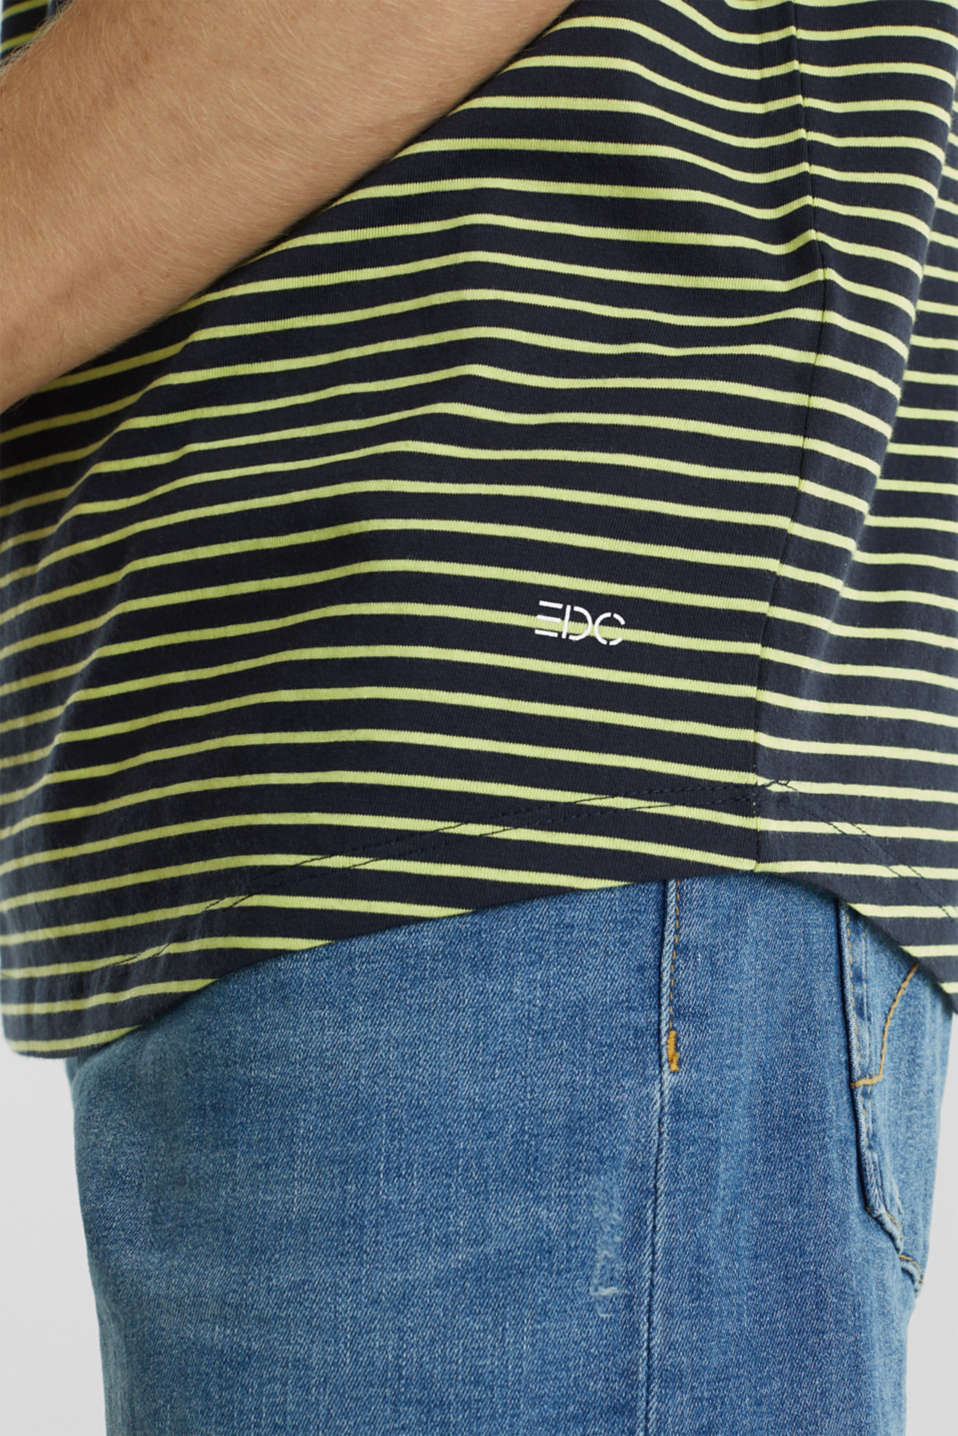 Jersey T-shirt with stripes, 100% cotton, BRIGHT YELLOW 3, detail image number 5